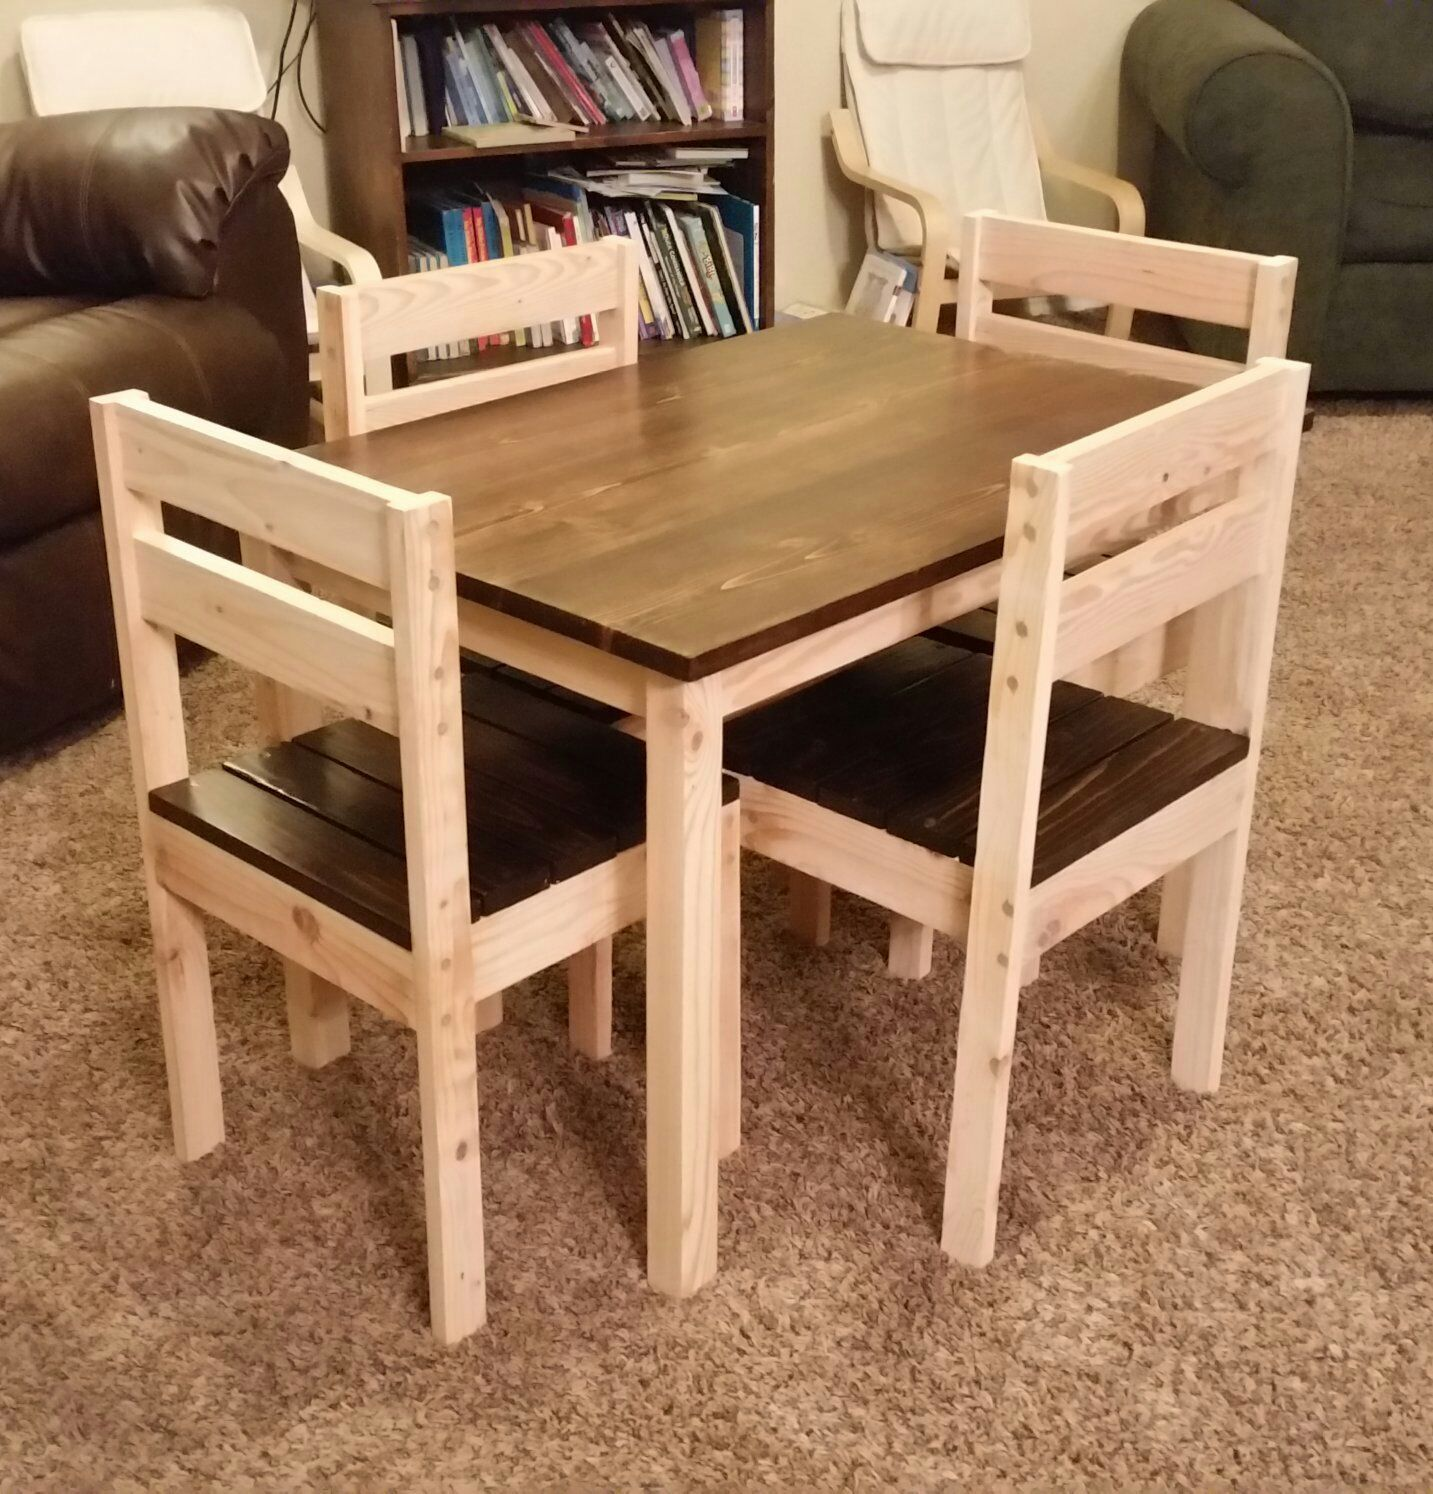 Kids table and chairs | Do It Yourself Home Projects from Ana ...